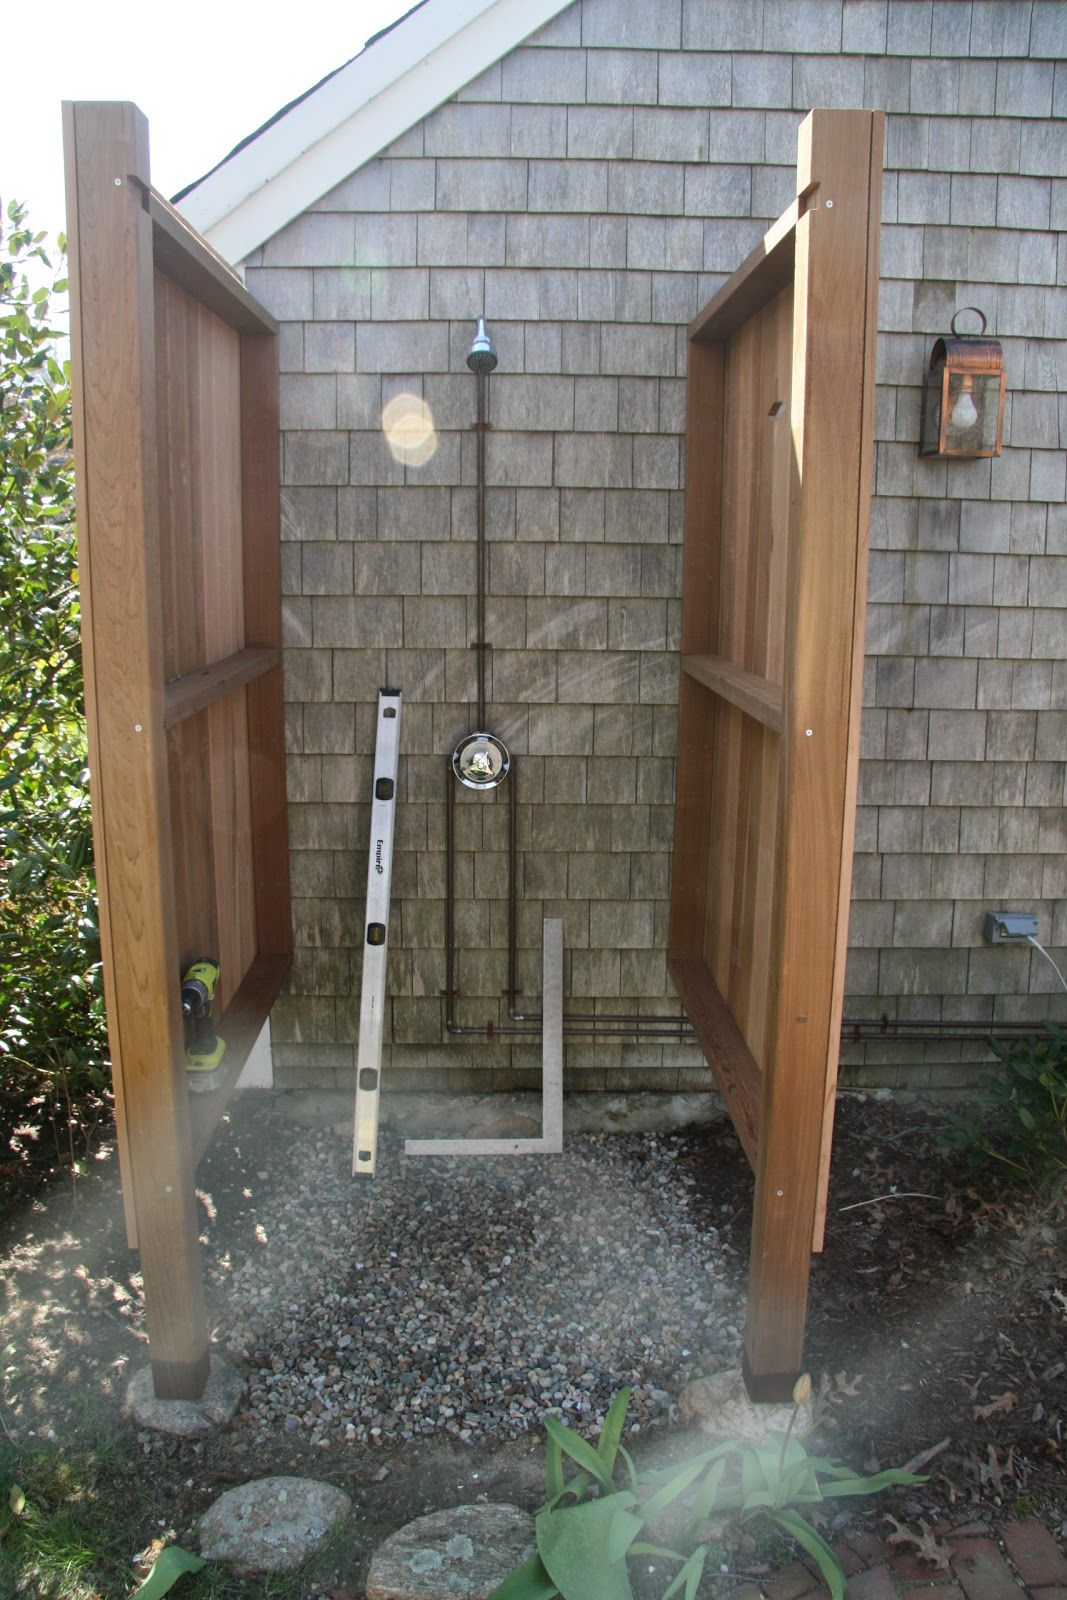 Our First Summer Vacation Project At Old Farm Was Installing An Outdoor Shower I Decided It